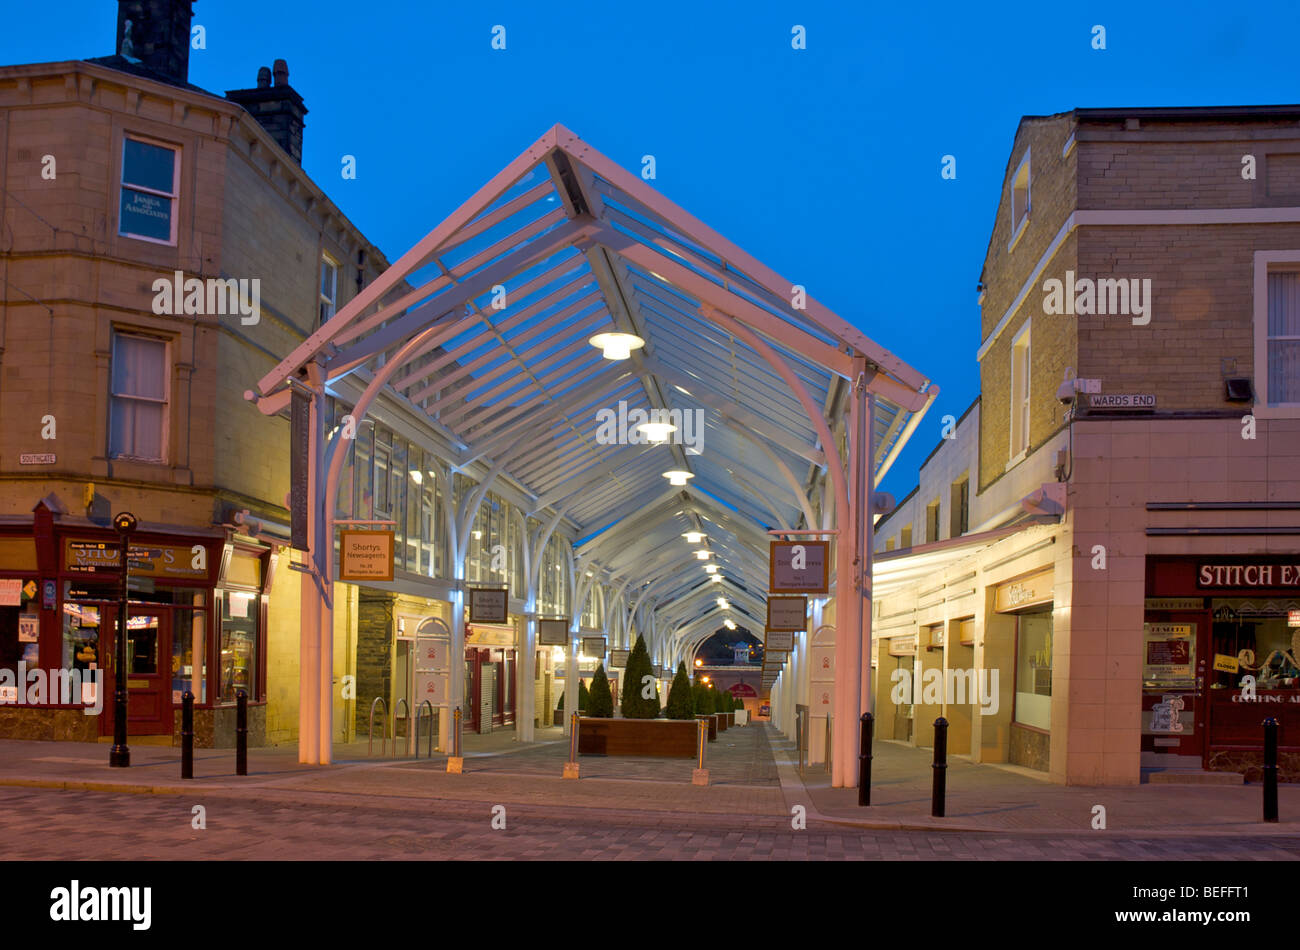 westgate arcade halifax stock photos westgate arcade halifax stock